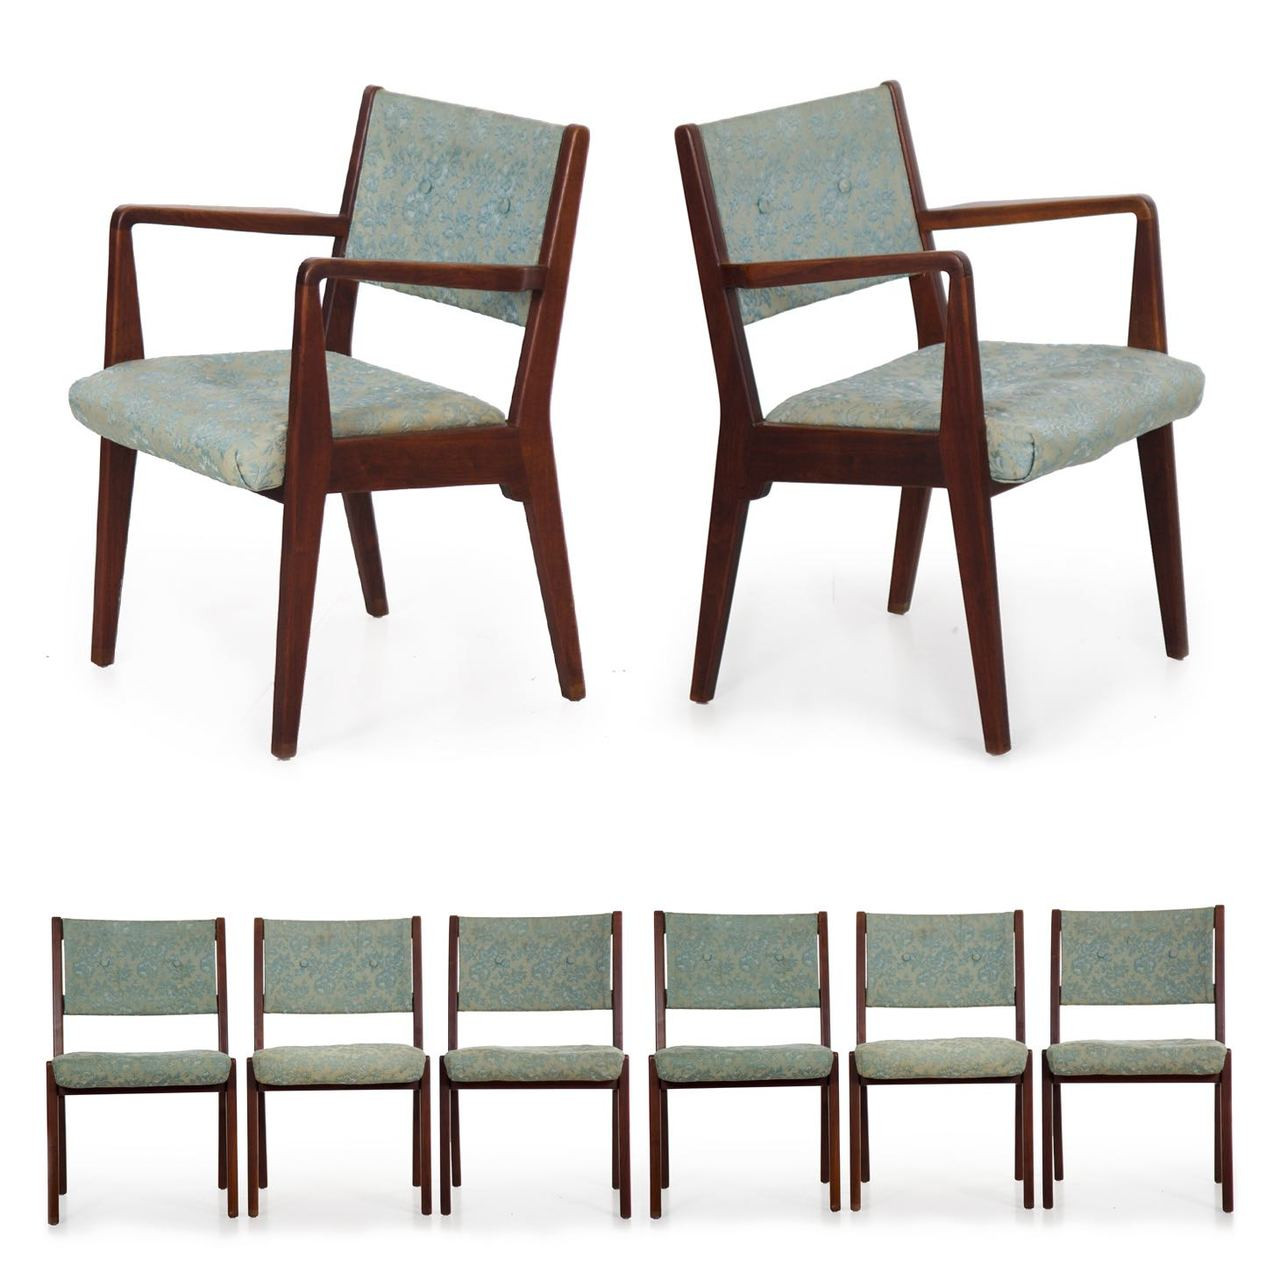 Walnut Dining Chair Set Of Eight Mid Century Modern Walnut Dining Chairs By Jens Risom